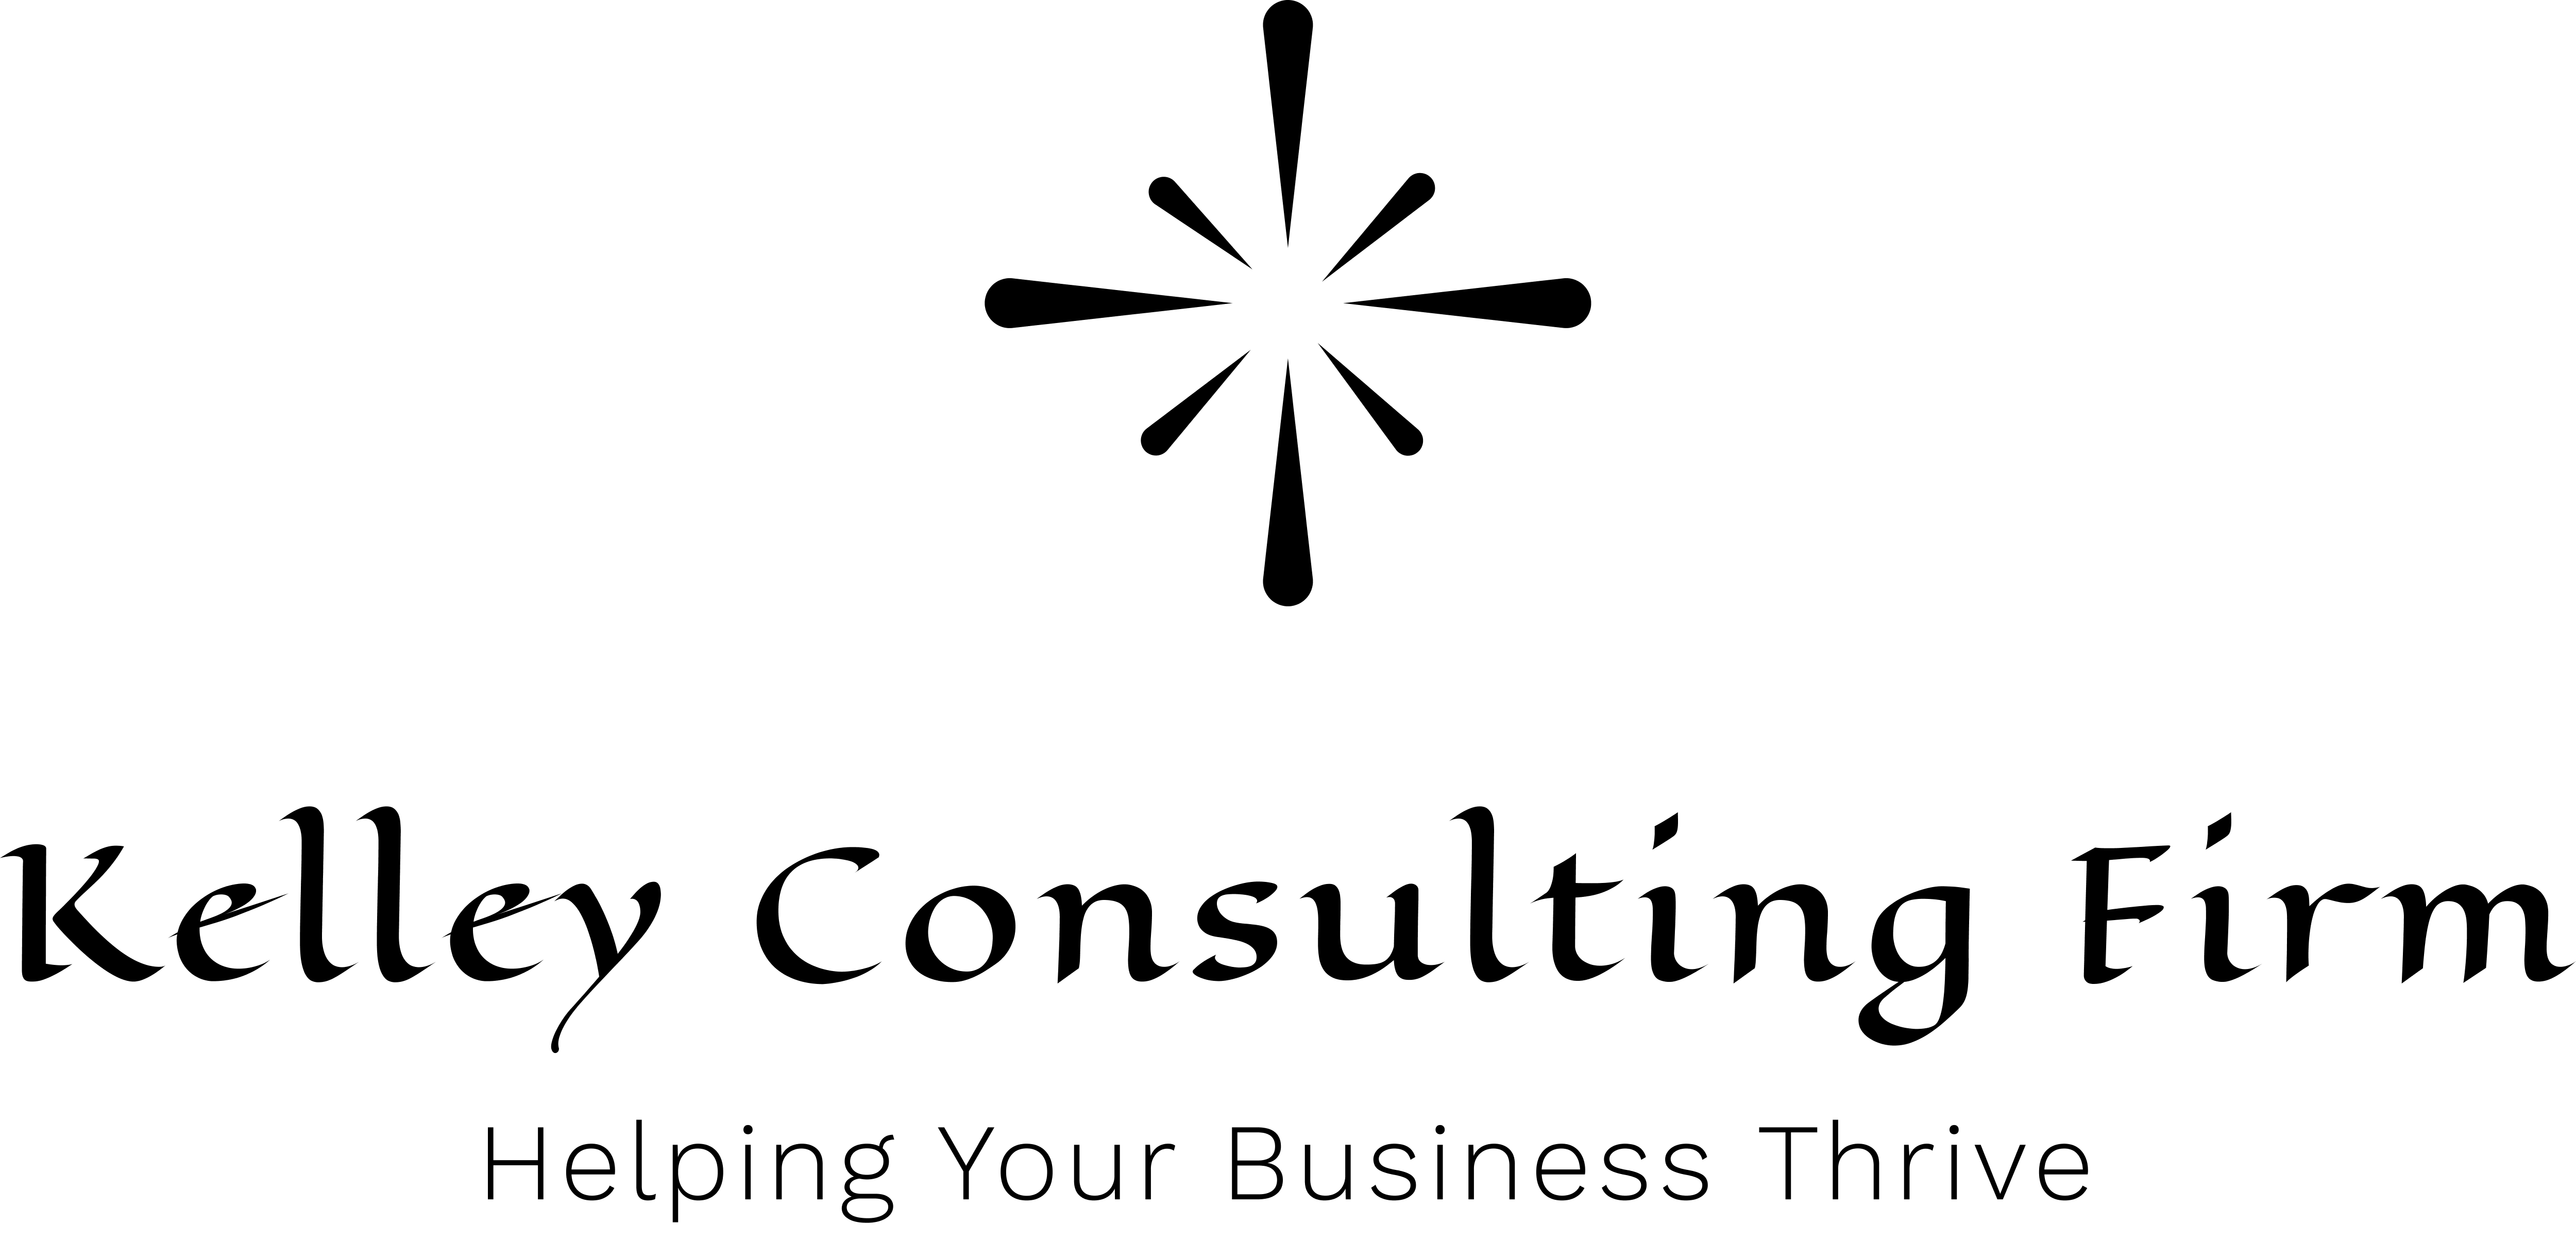 Logo Picture of Star Like Symbol